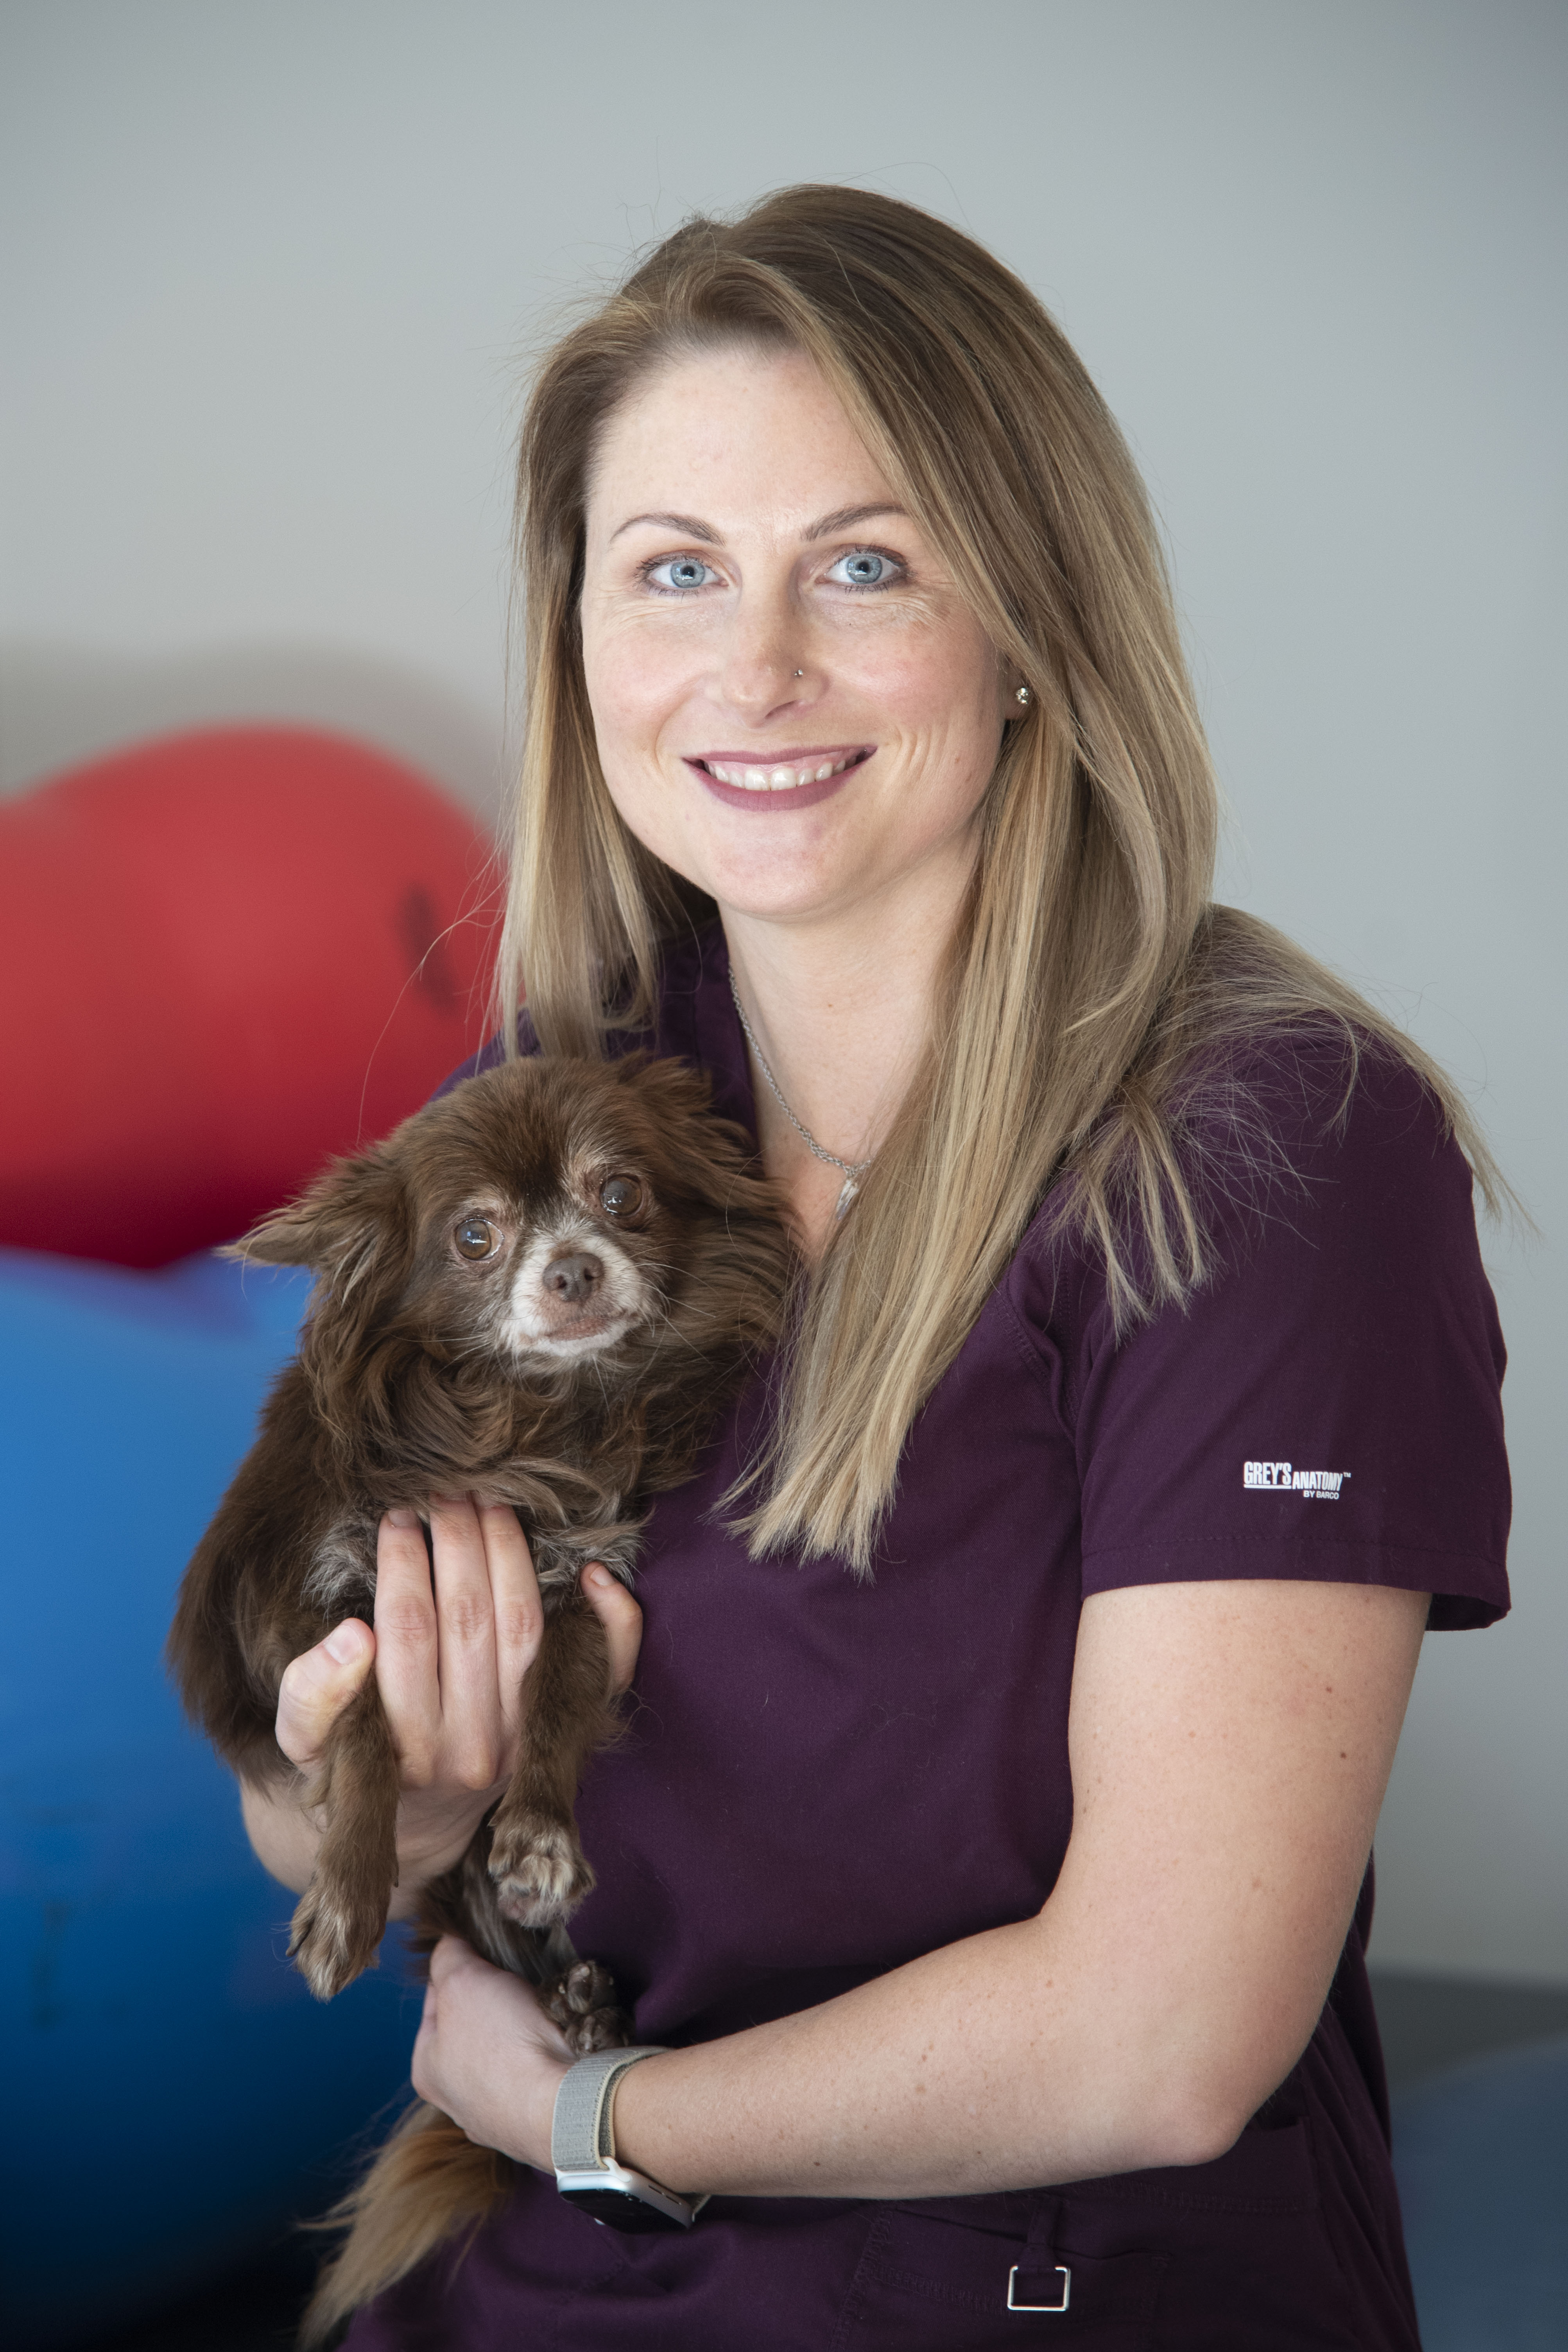 A veterinarian poses with a dog